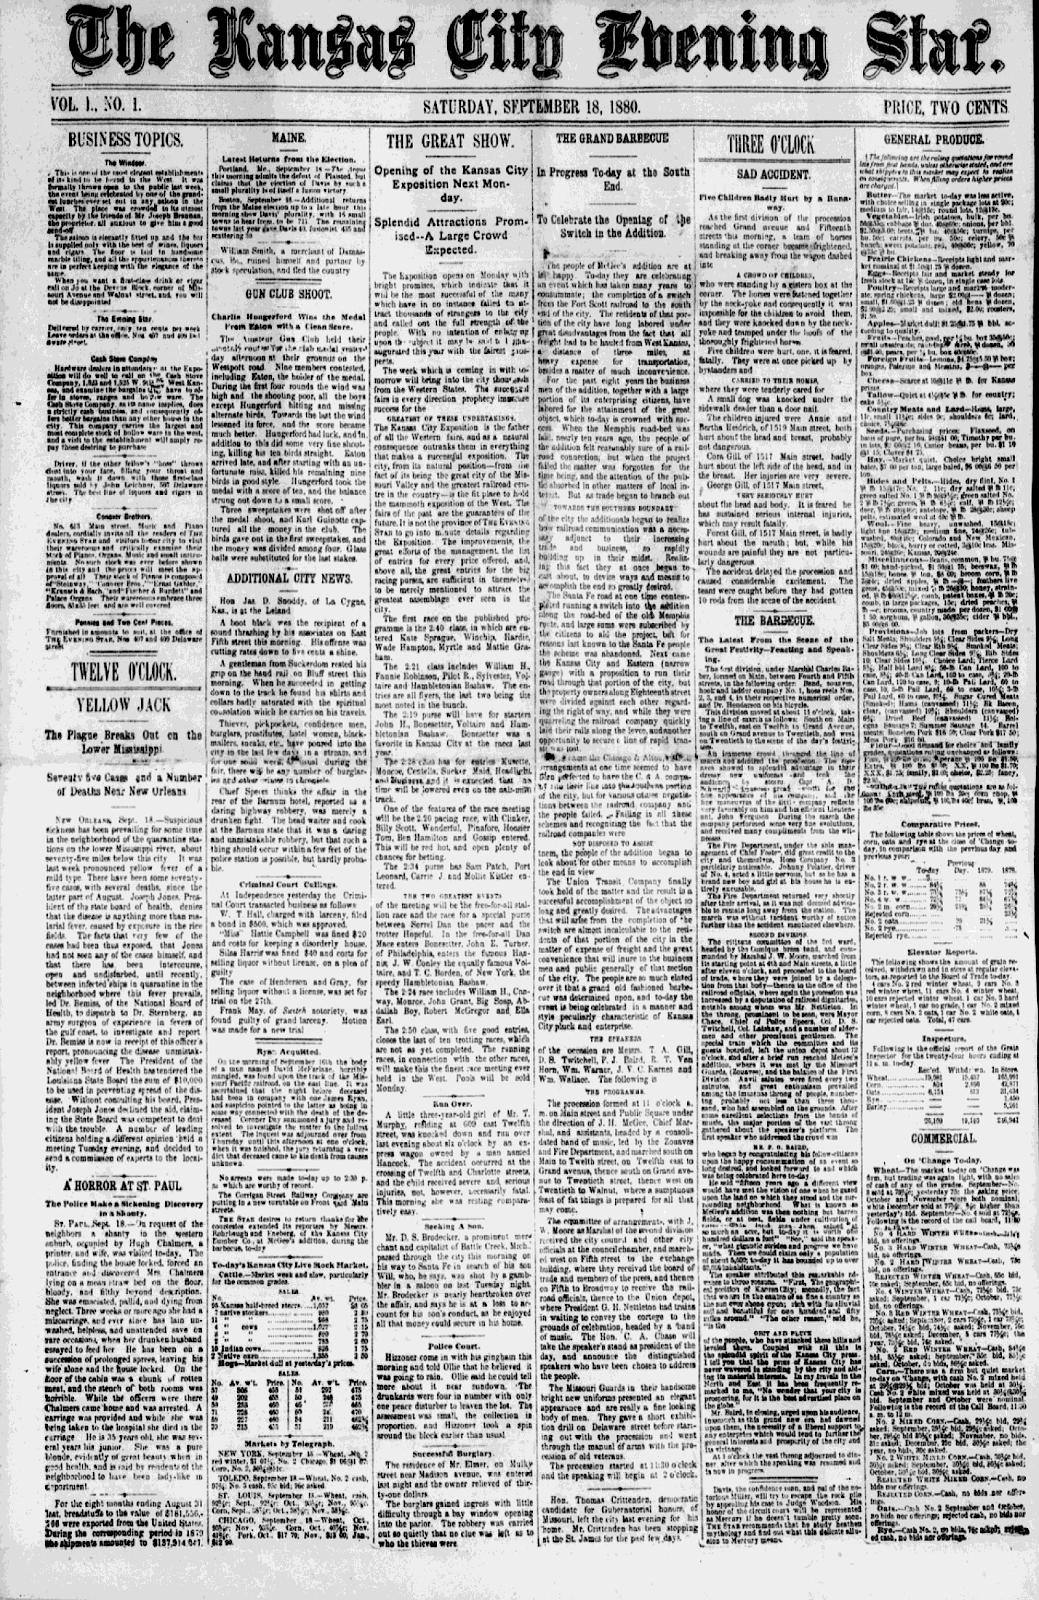 Kansas City Evening Star first edition 1880